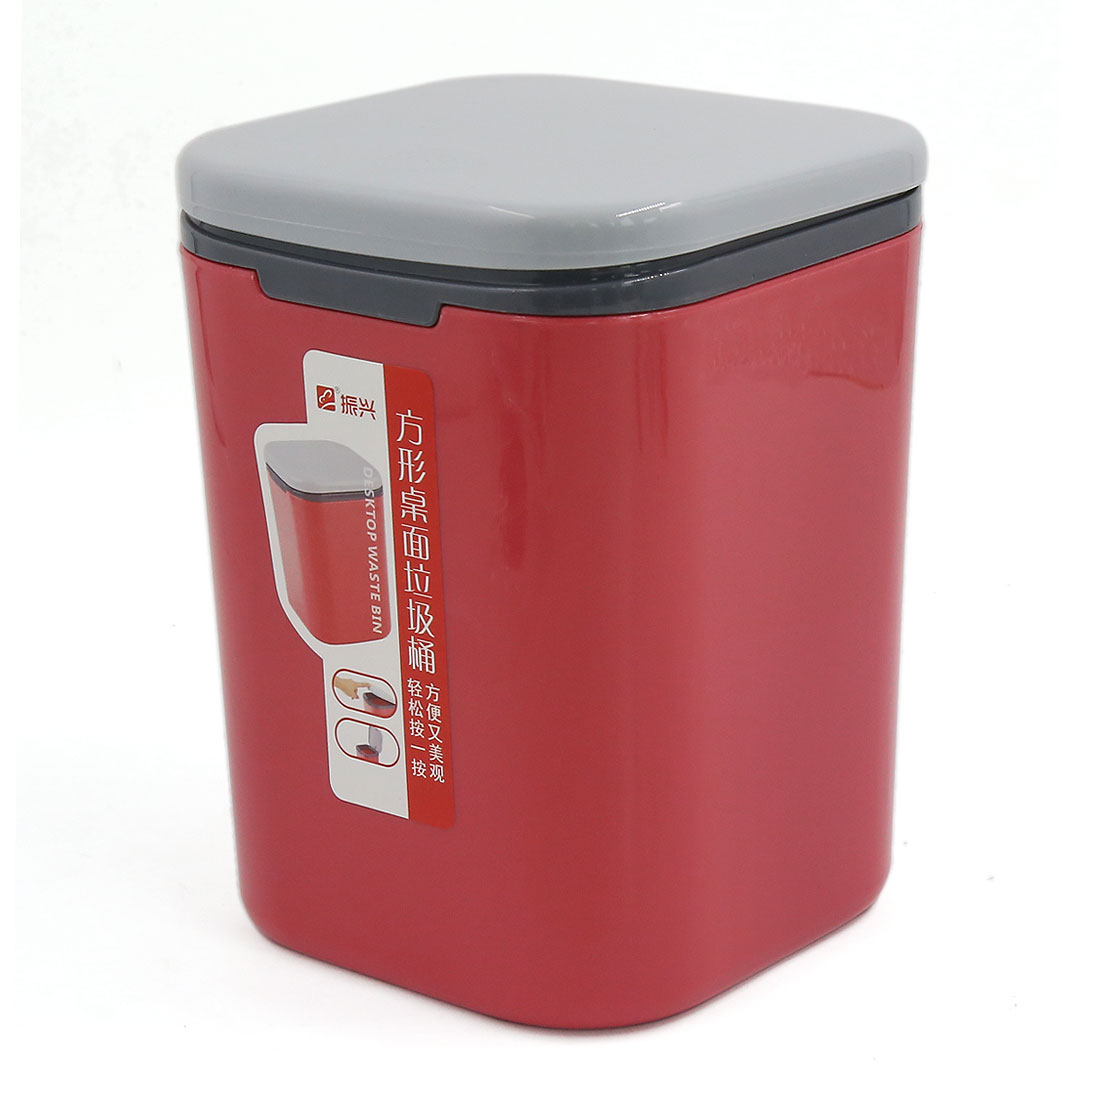 Trash Rubbish Can Rectangular Garbage Dust Dustbin Case Holder Gray Red for Car